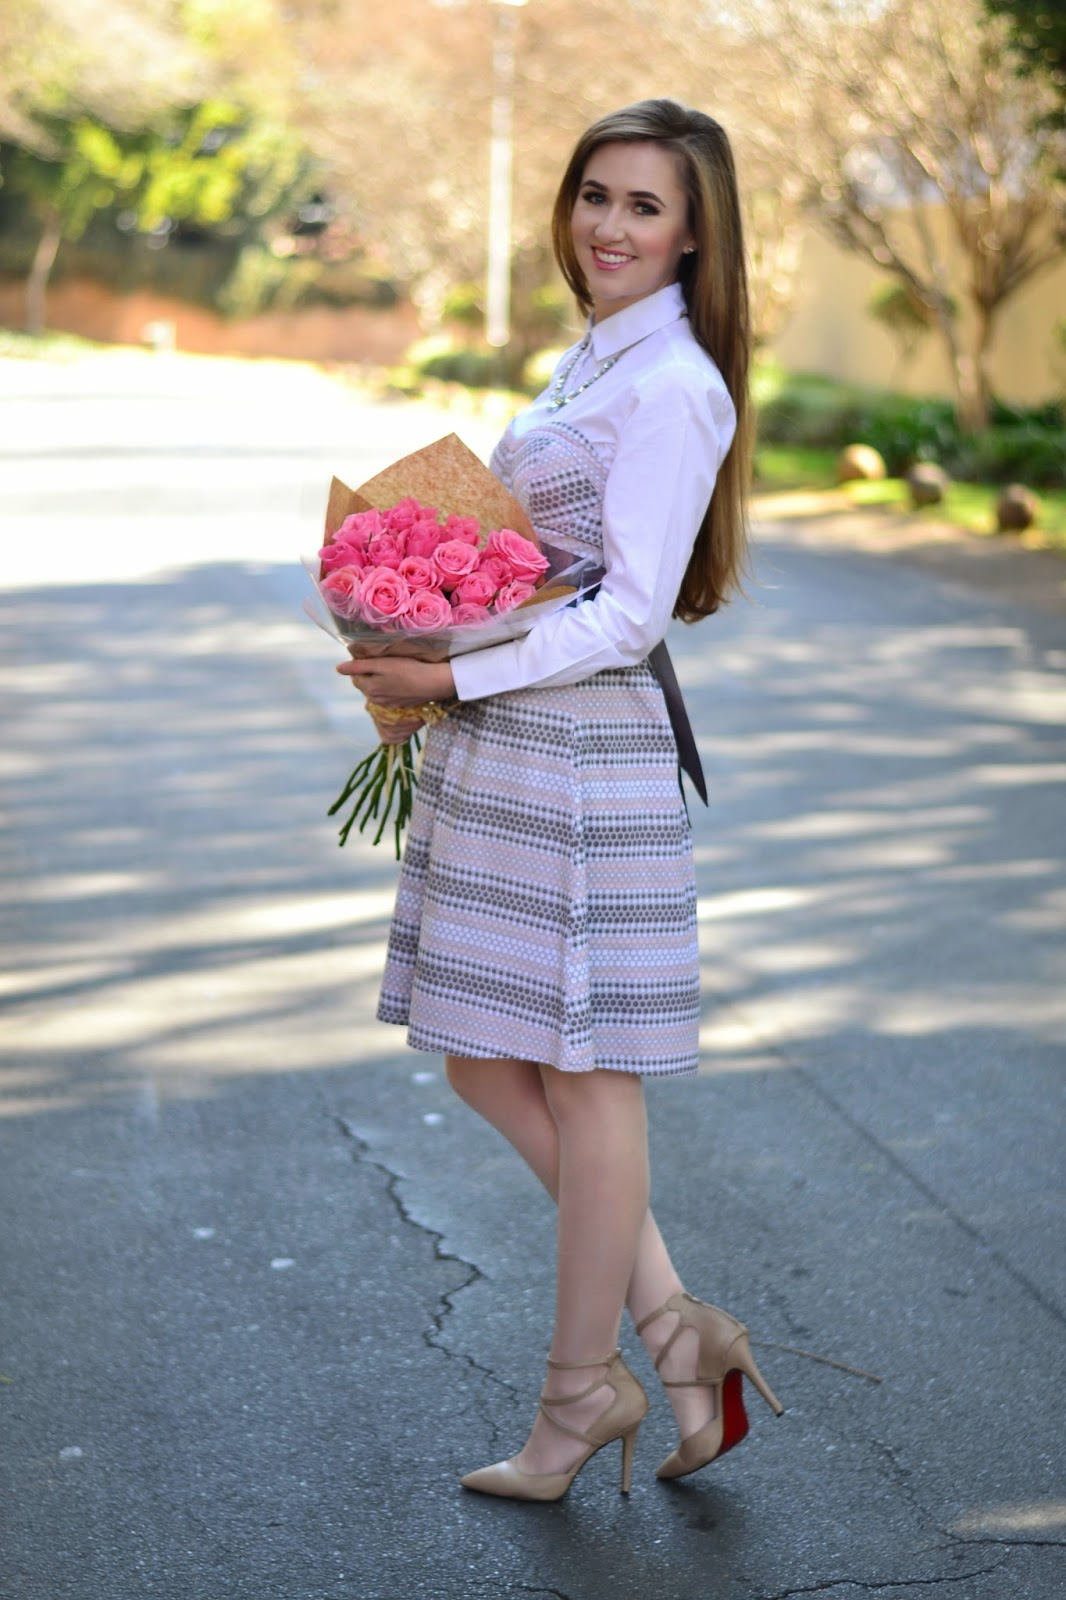 Sunday Best outfit style florals roses